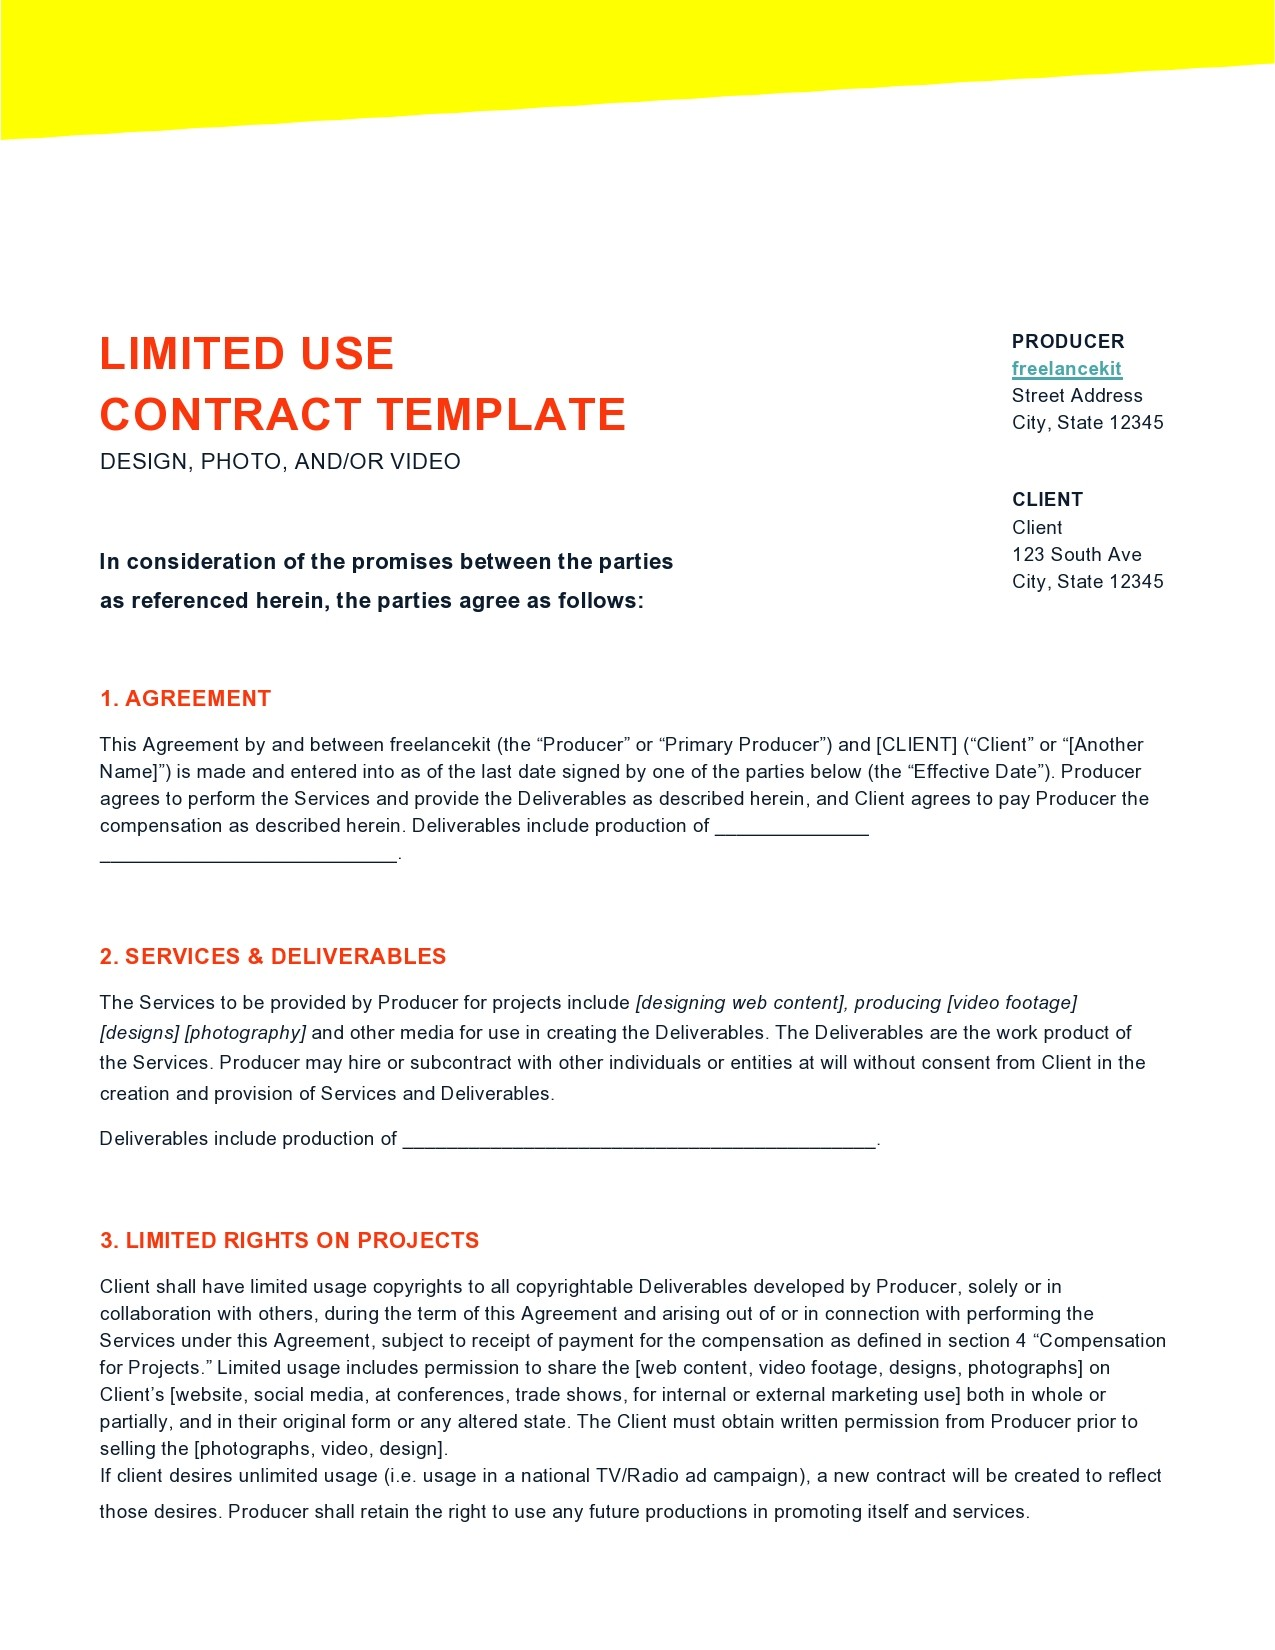 Free freelance contract template 20